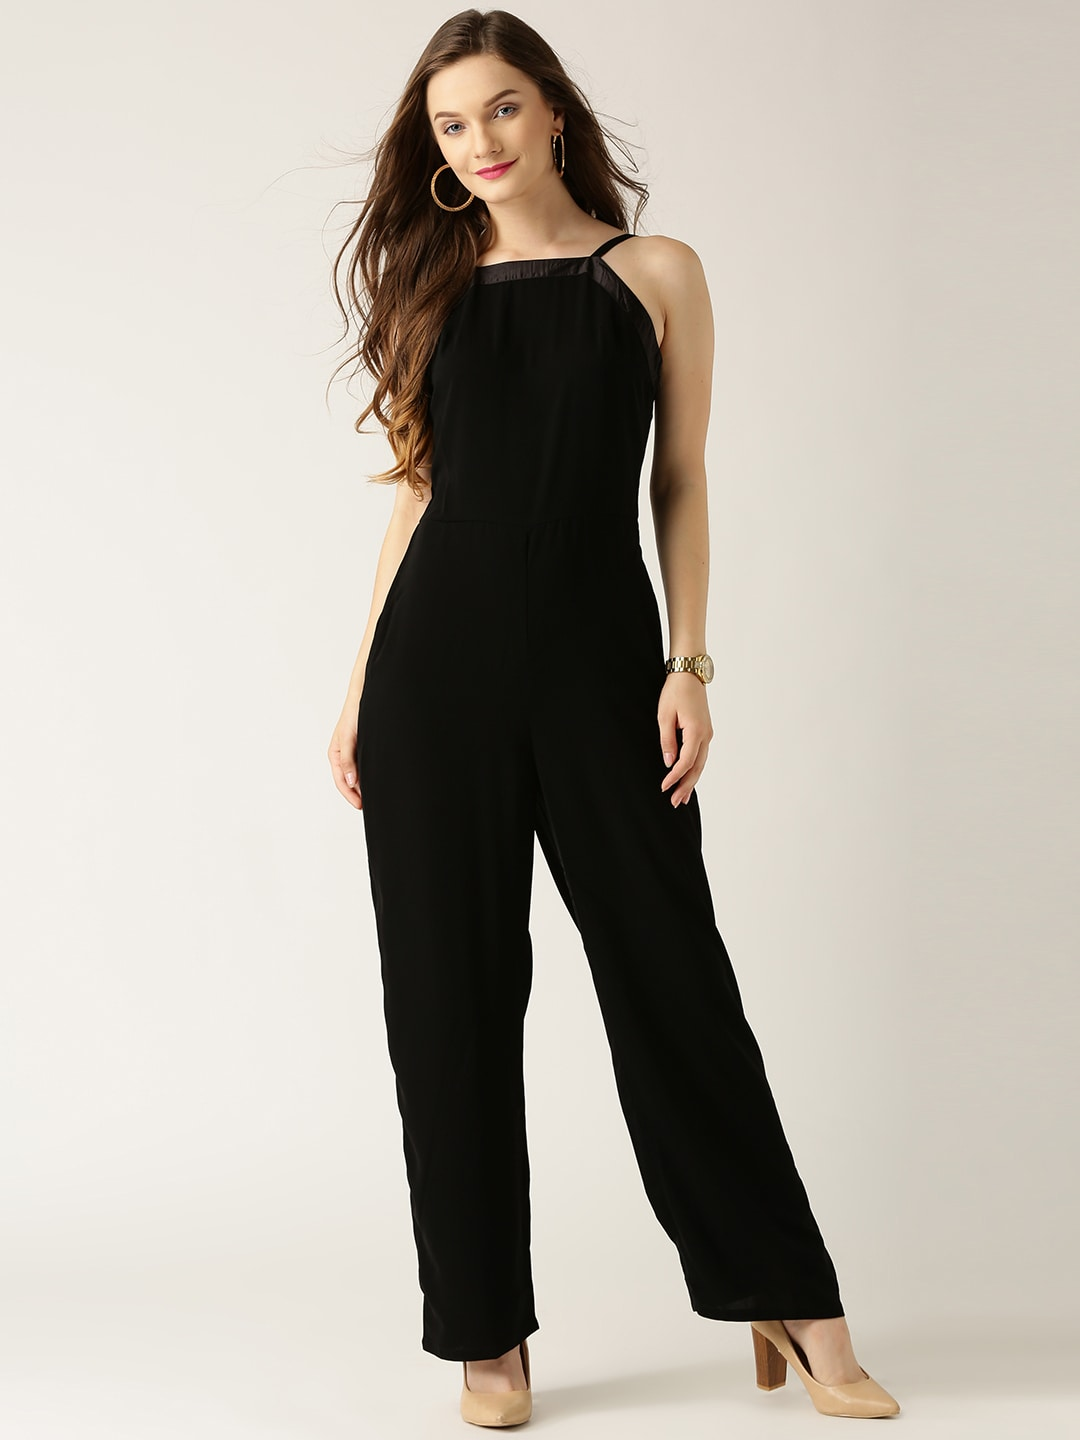 Marie Claire Black Jumpsuit Myntra Rs. 1919